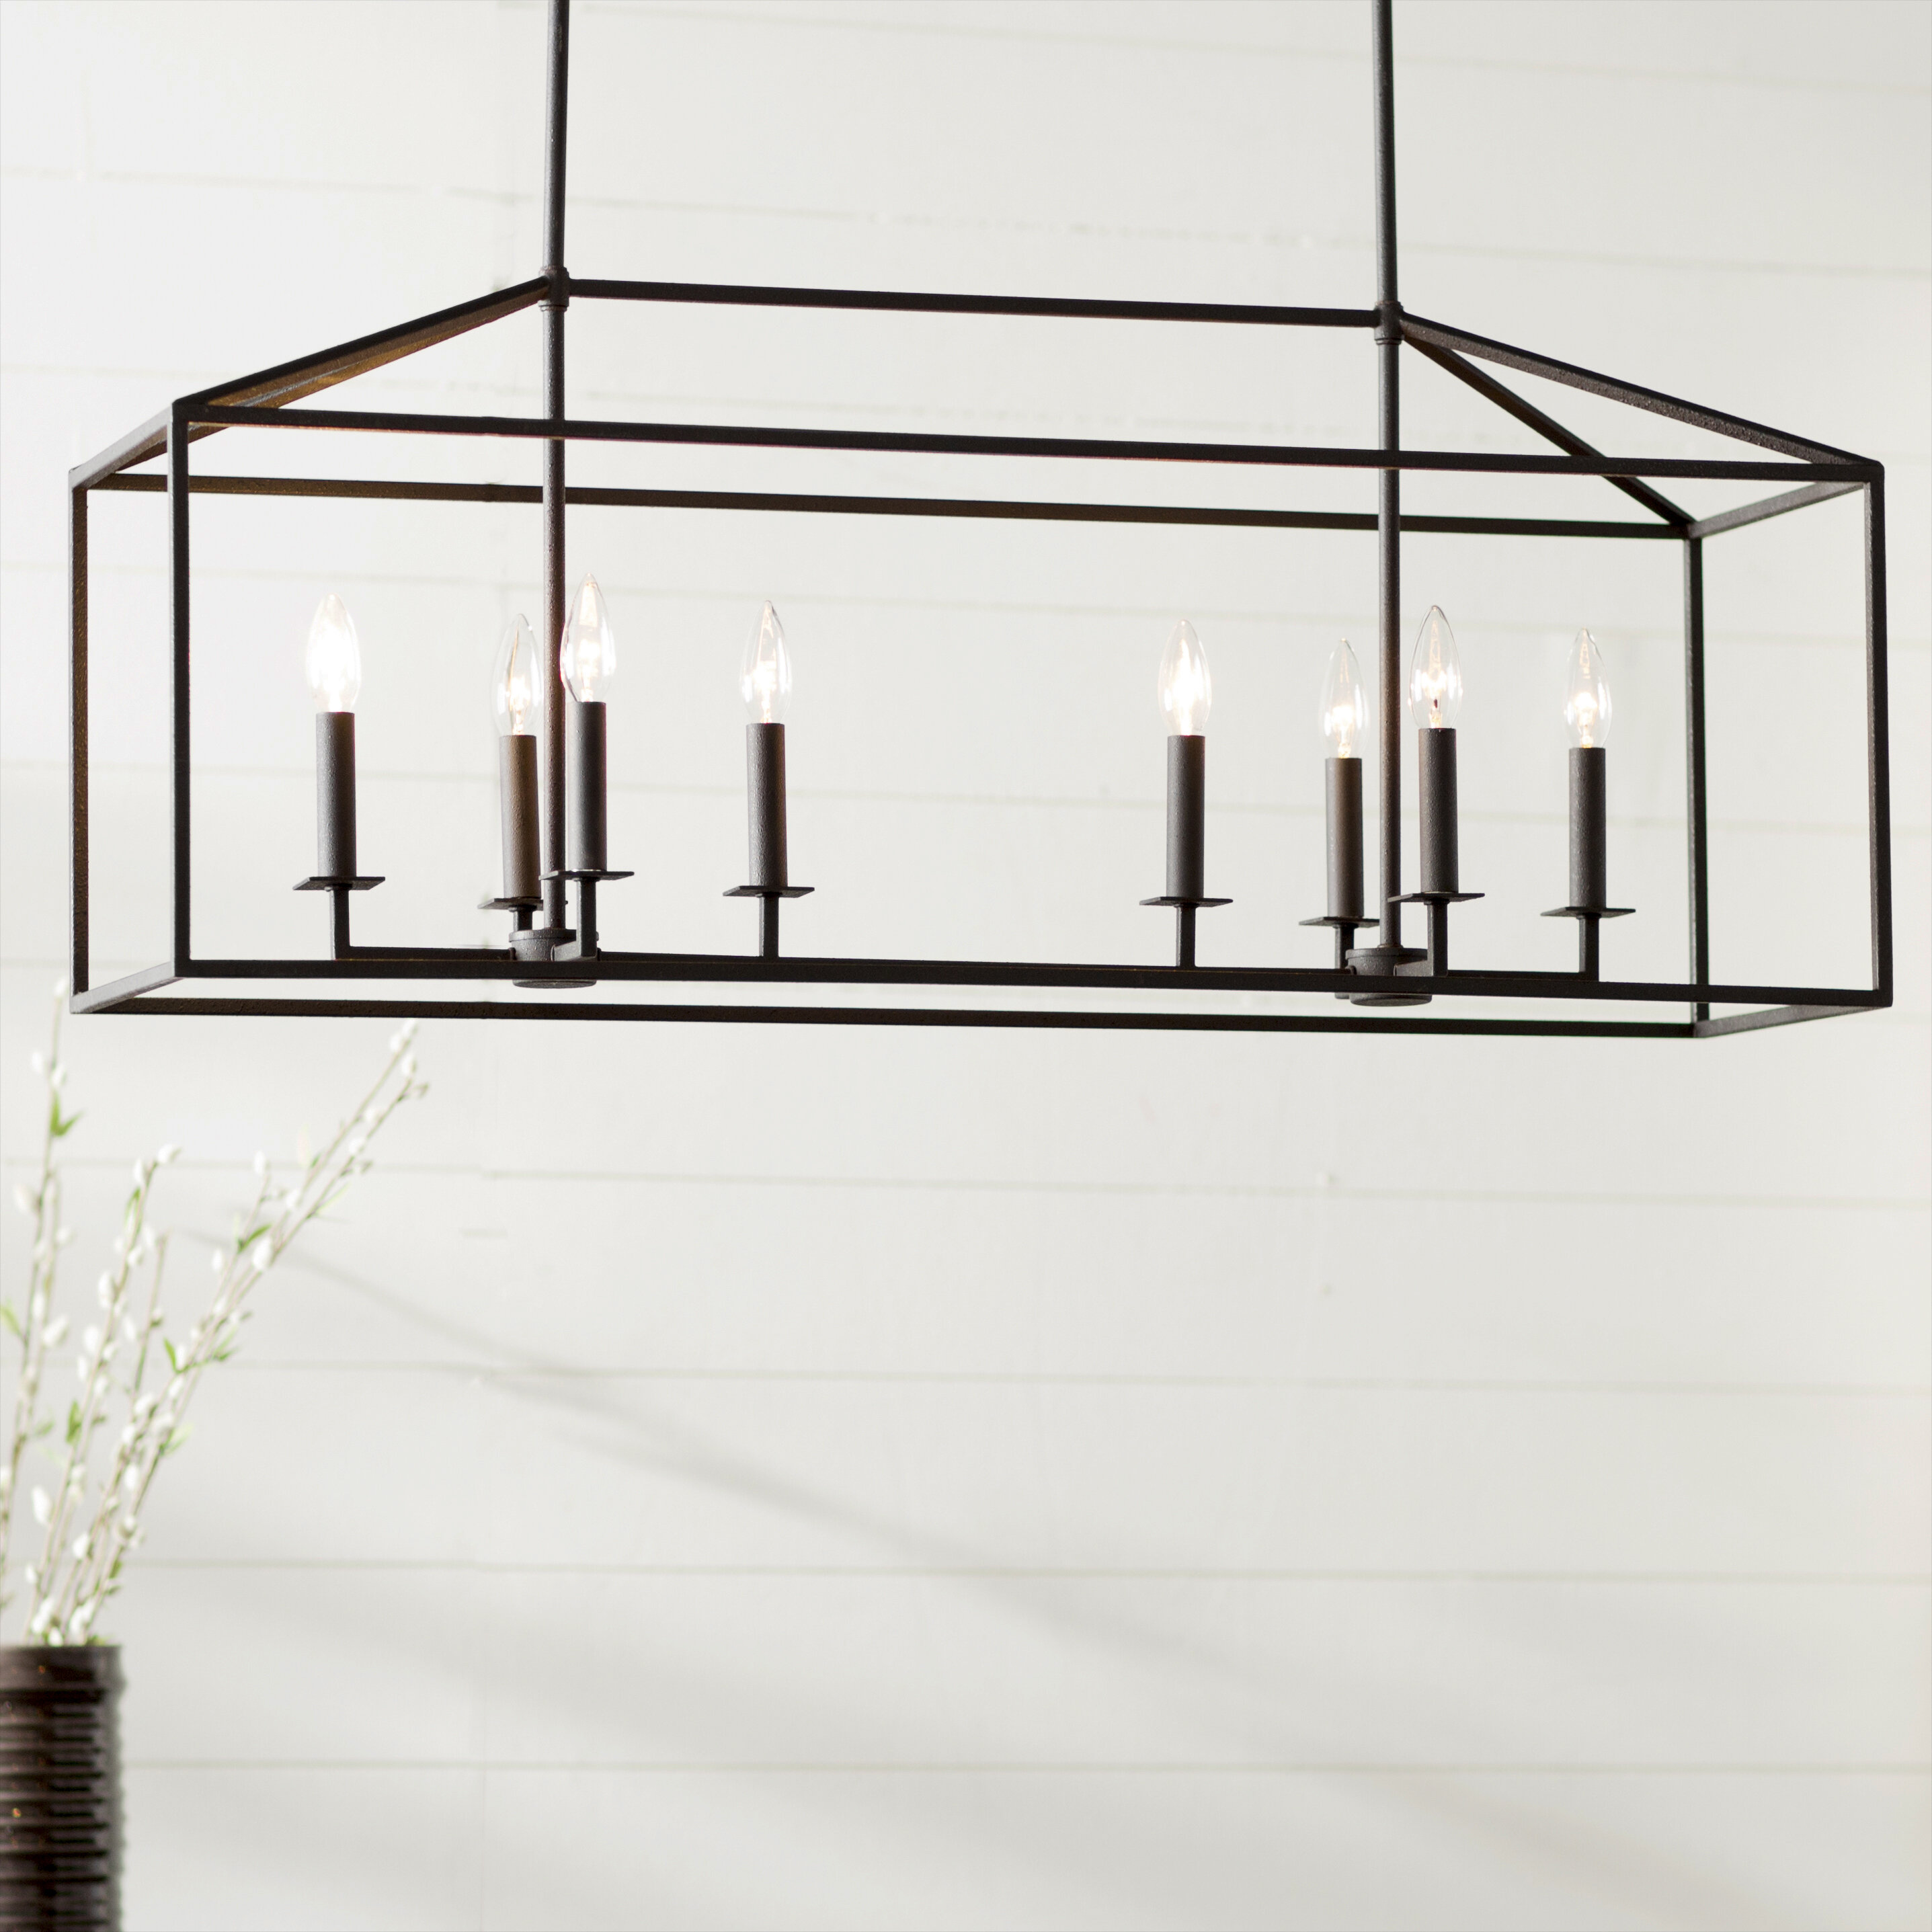 on pendant light lamp china bone crowdyhouse aan shop